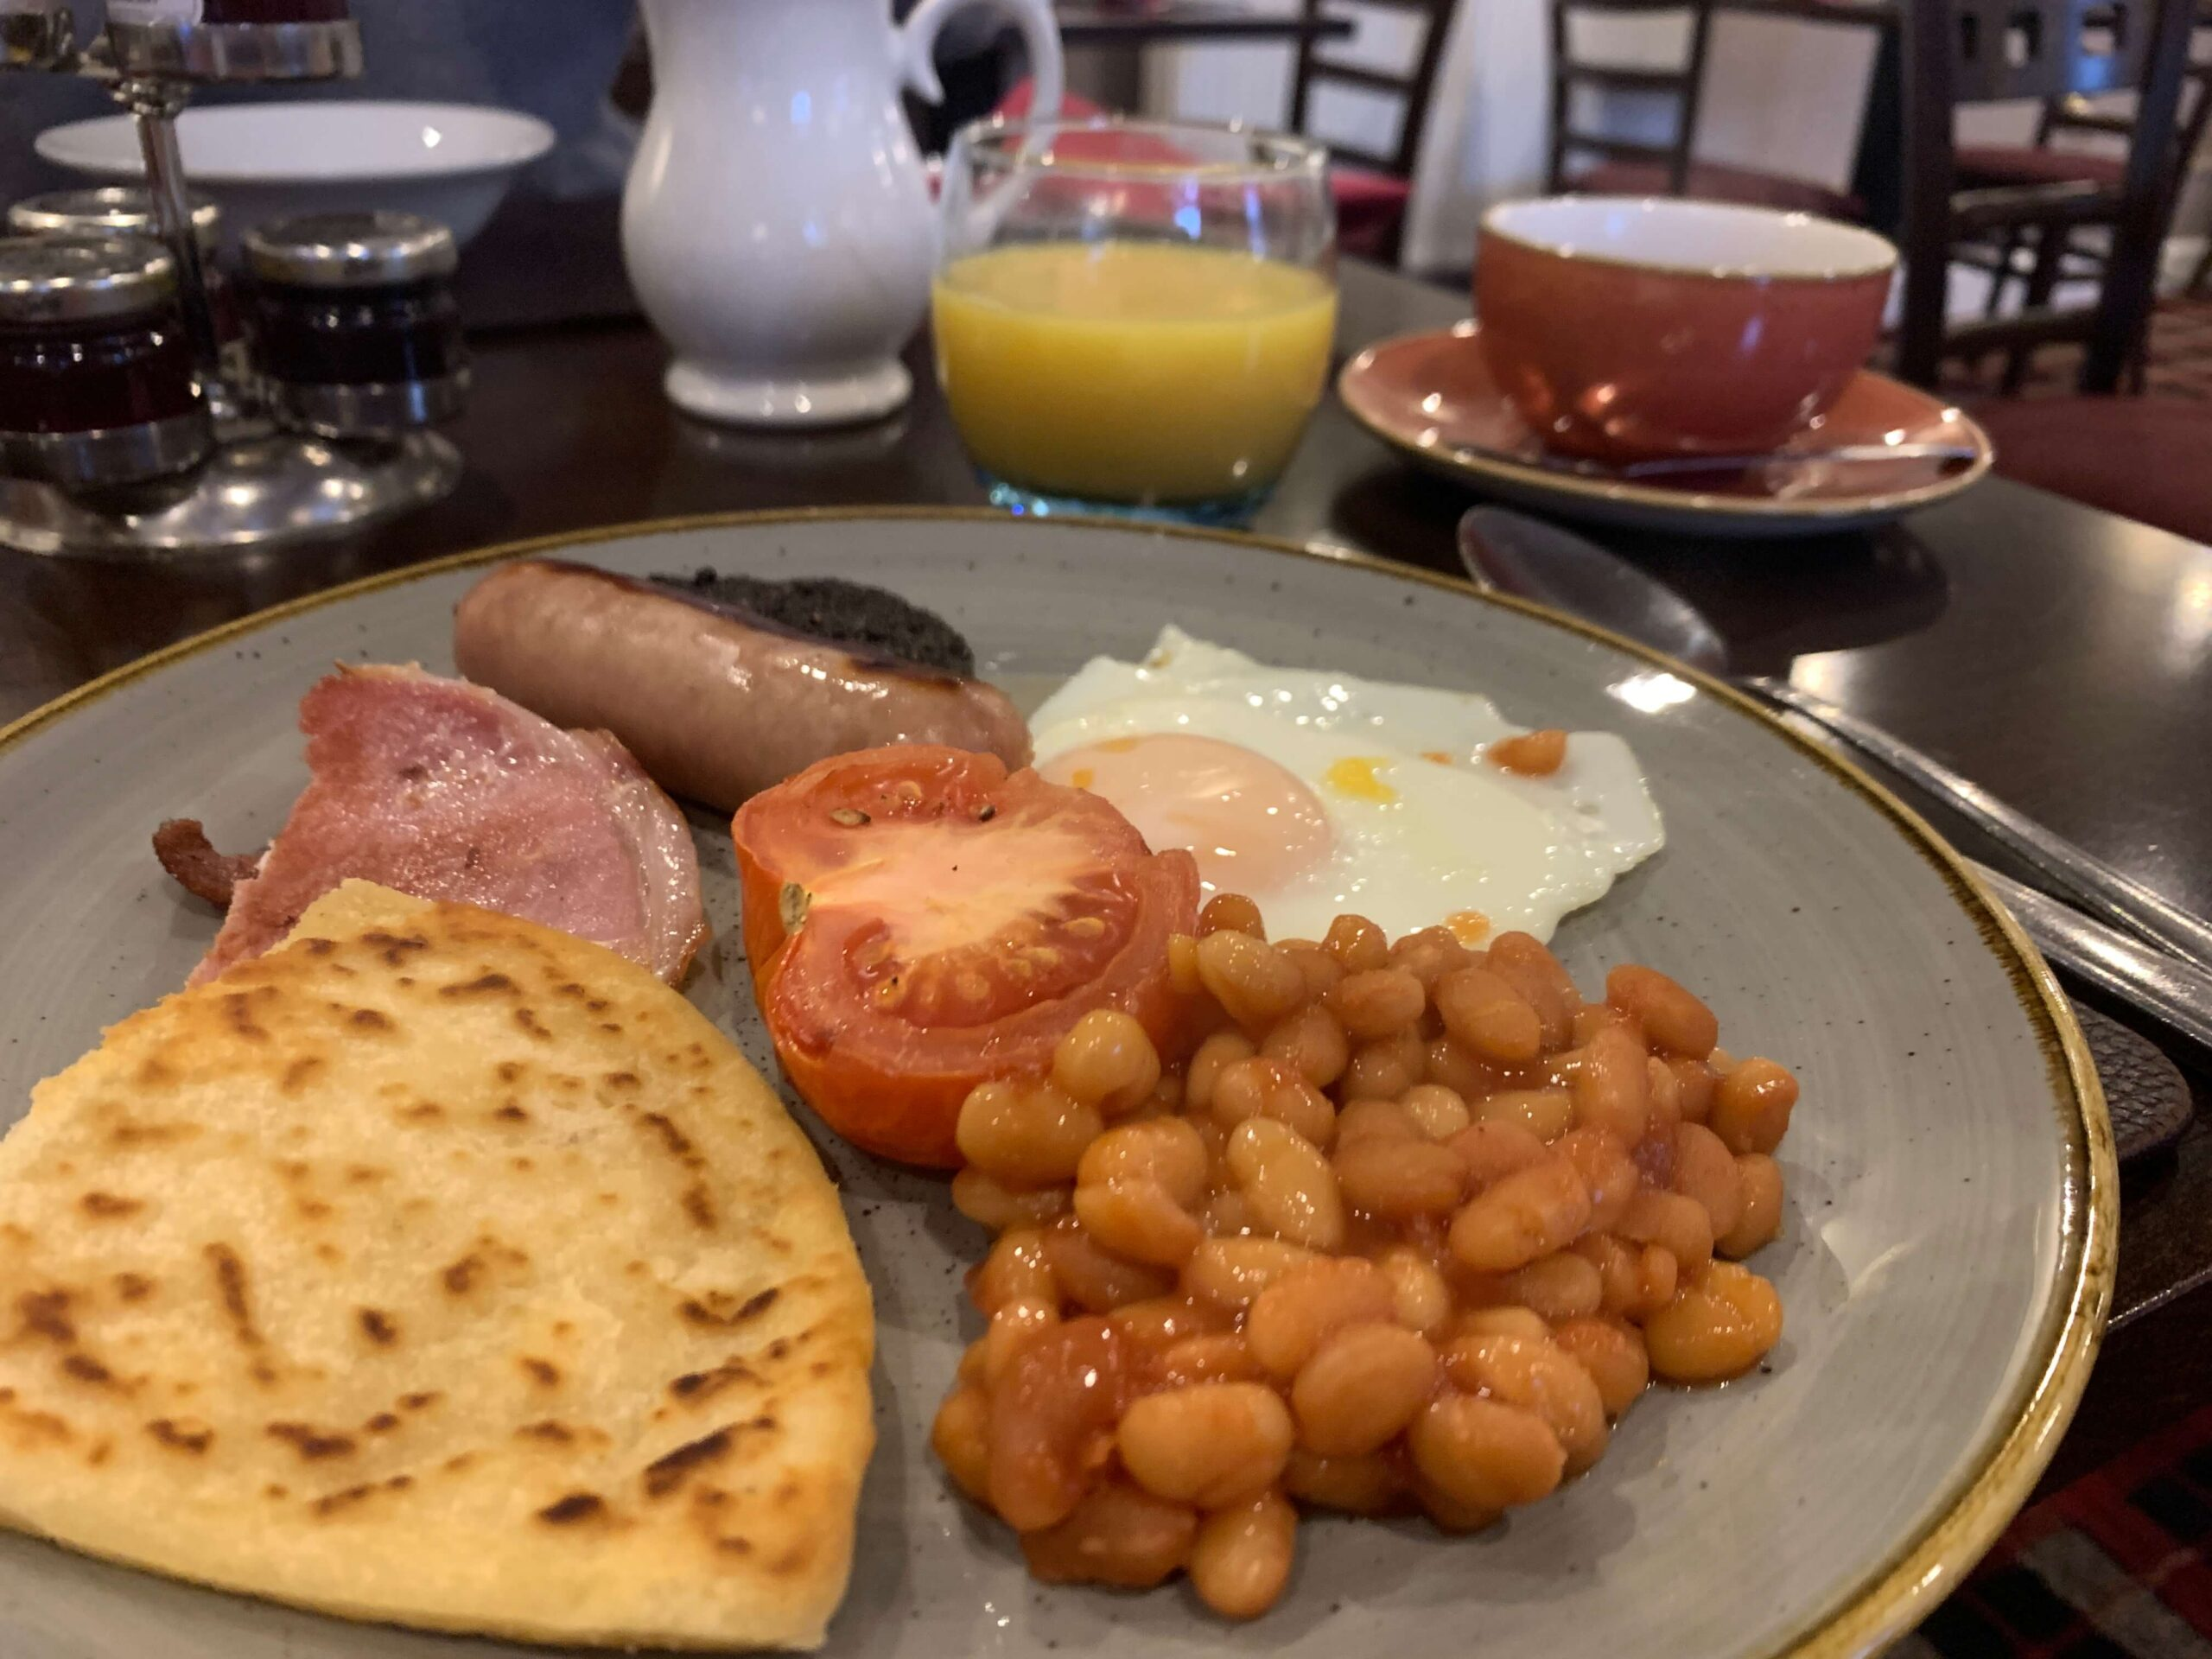 Cooked breakfast at The Elphinstone